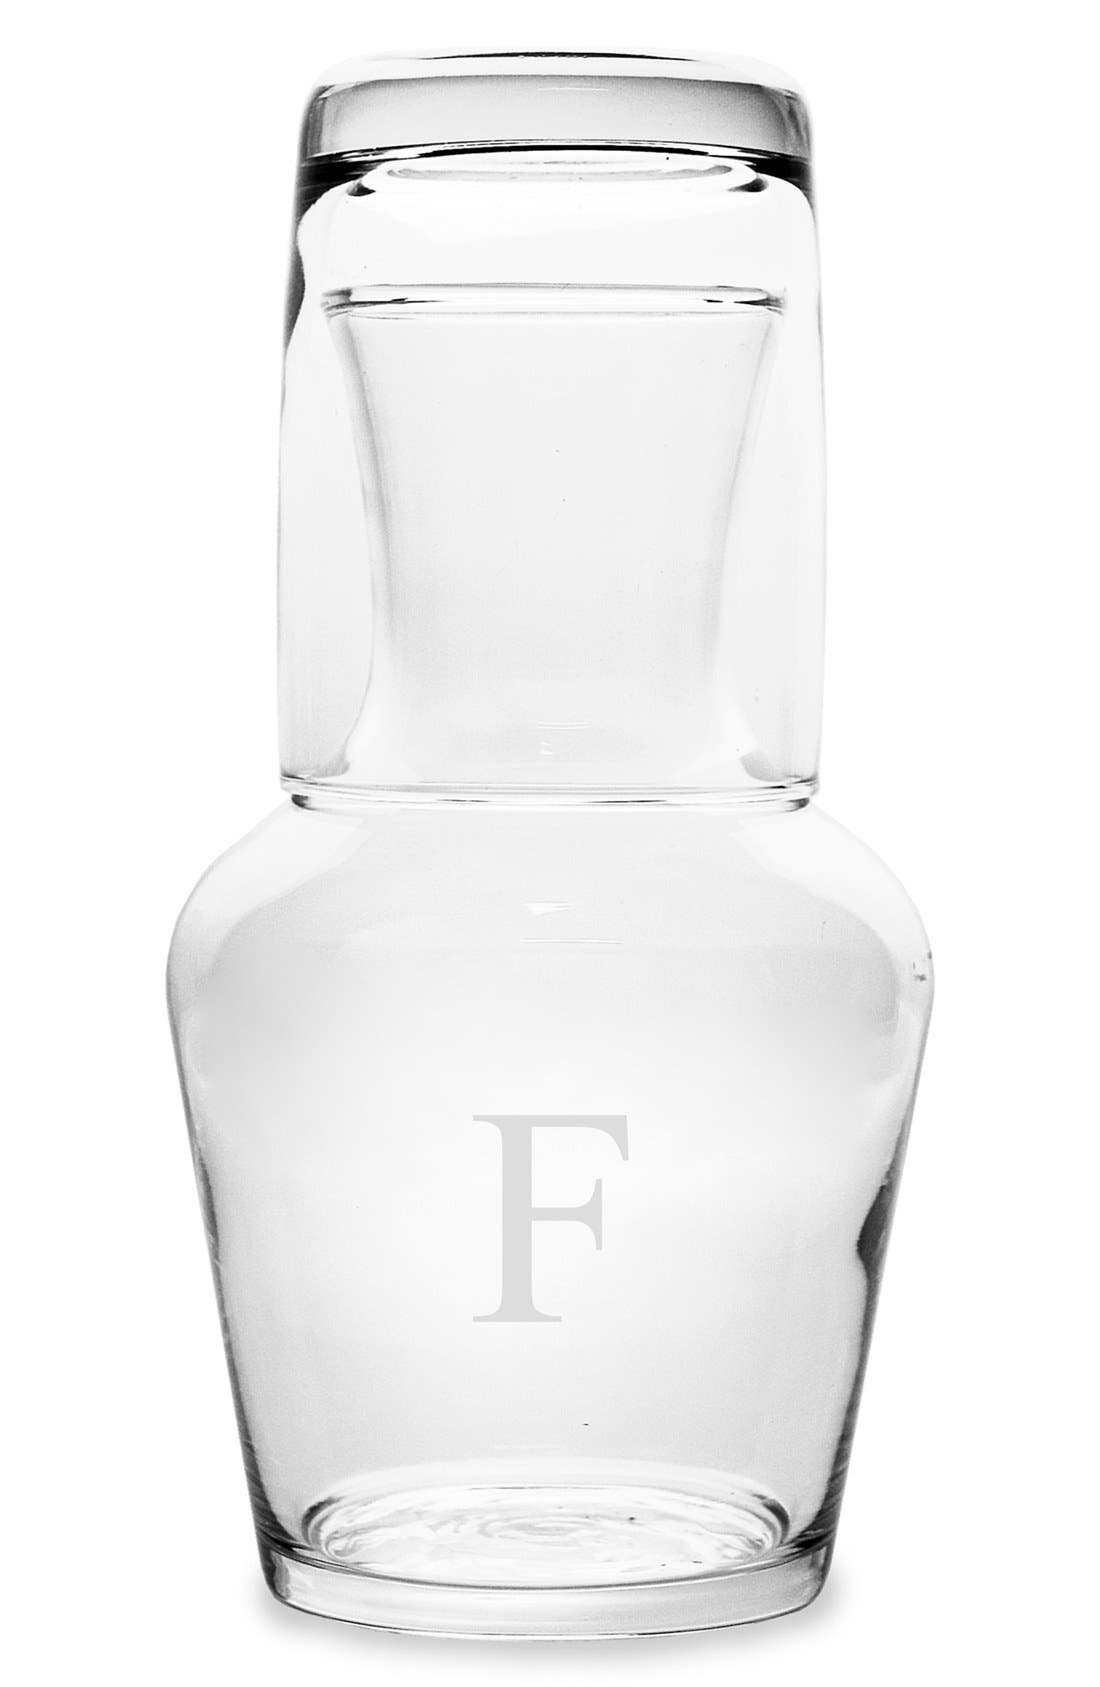 Alternate Image 1 Selected - Cathy's Concepts Monogram Bedside Water Carafe Set